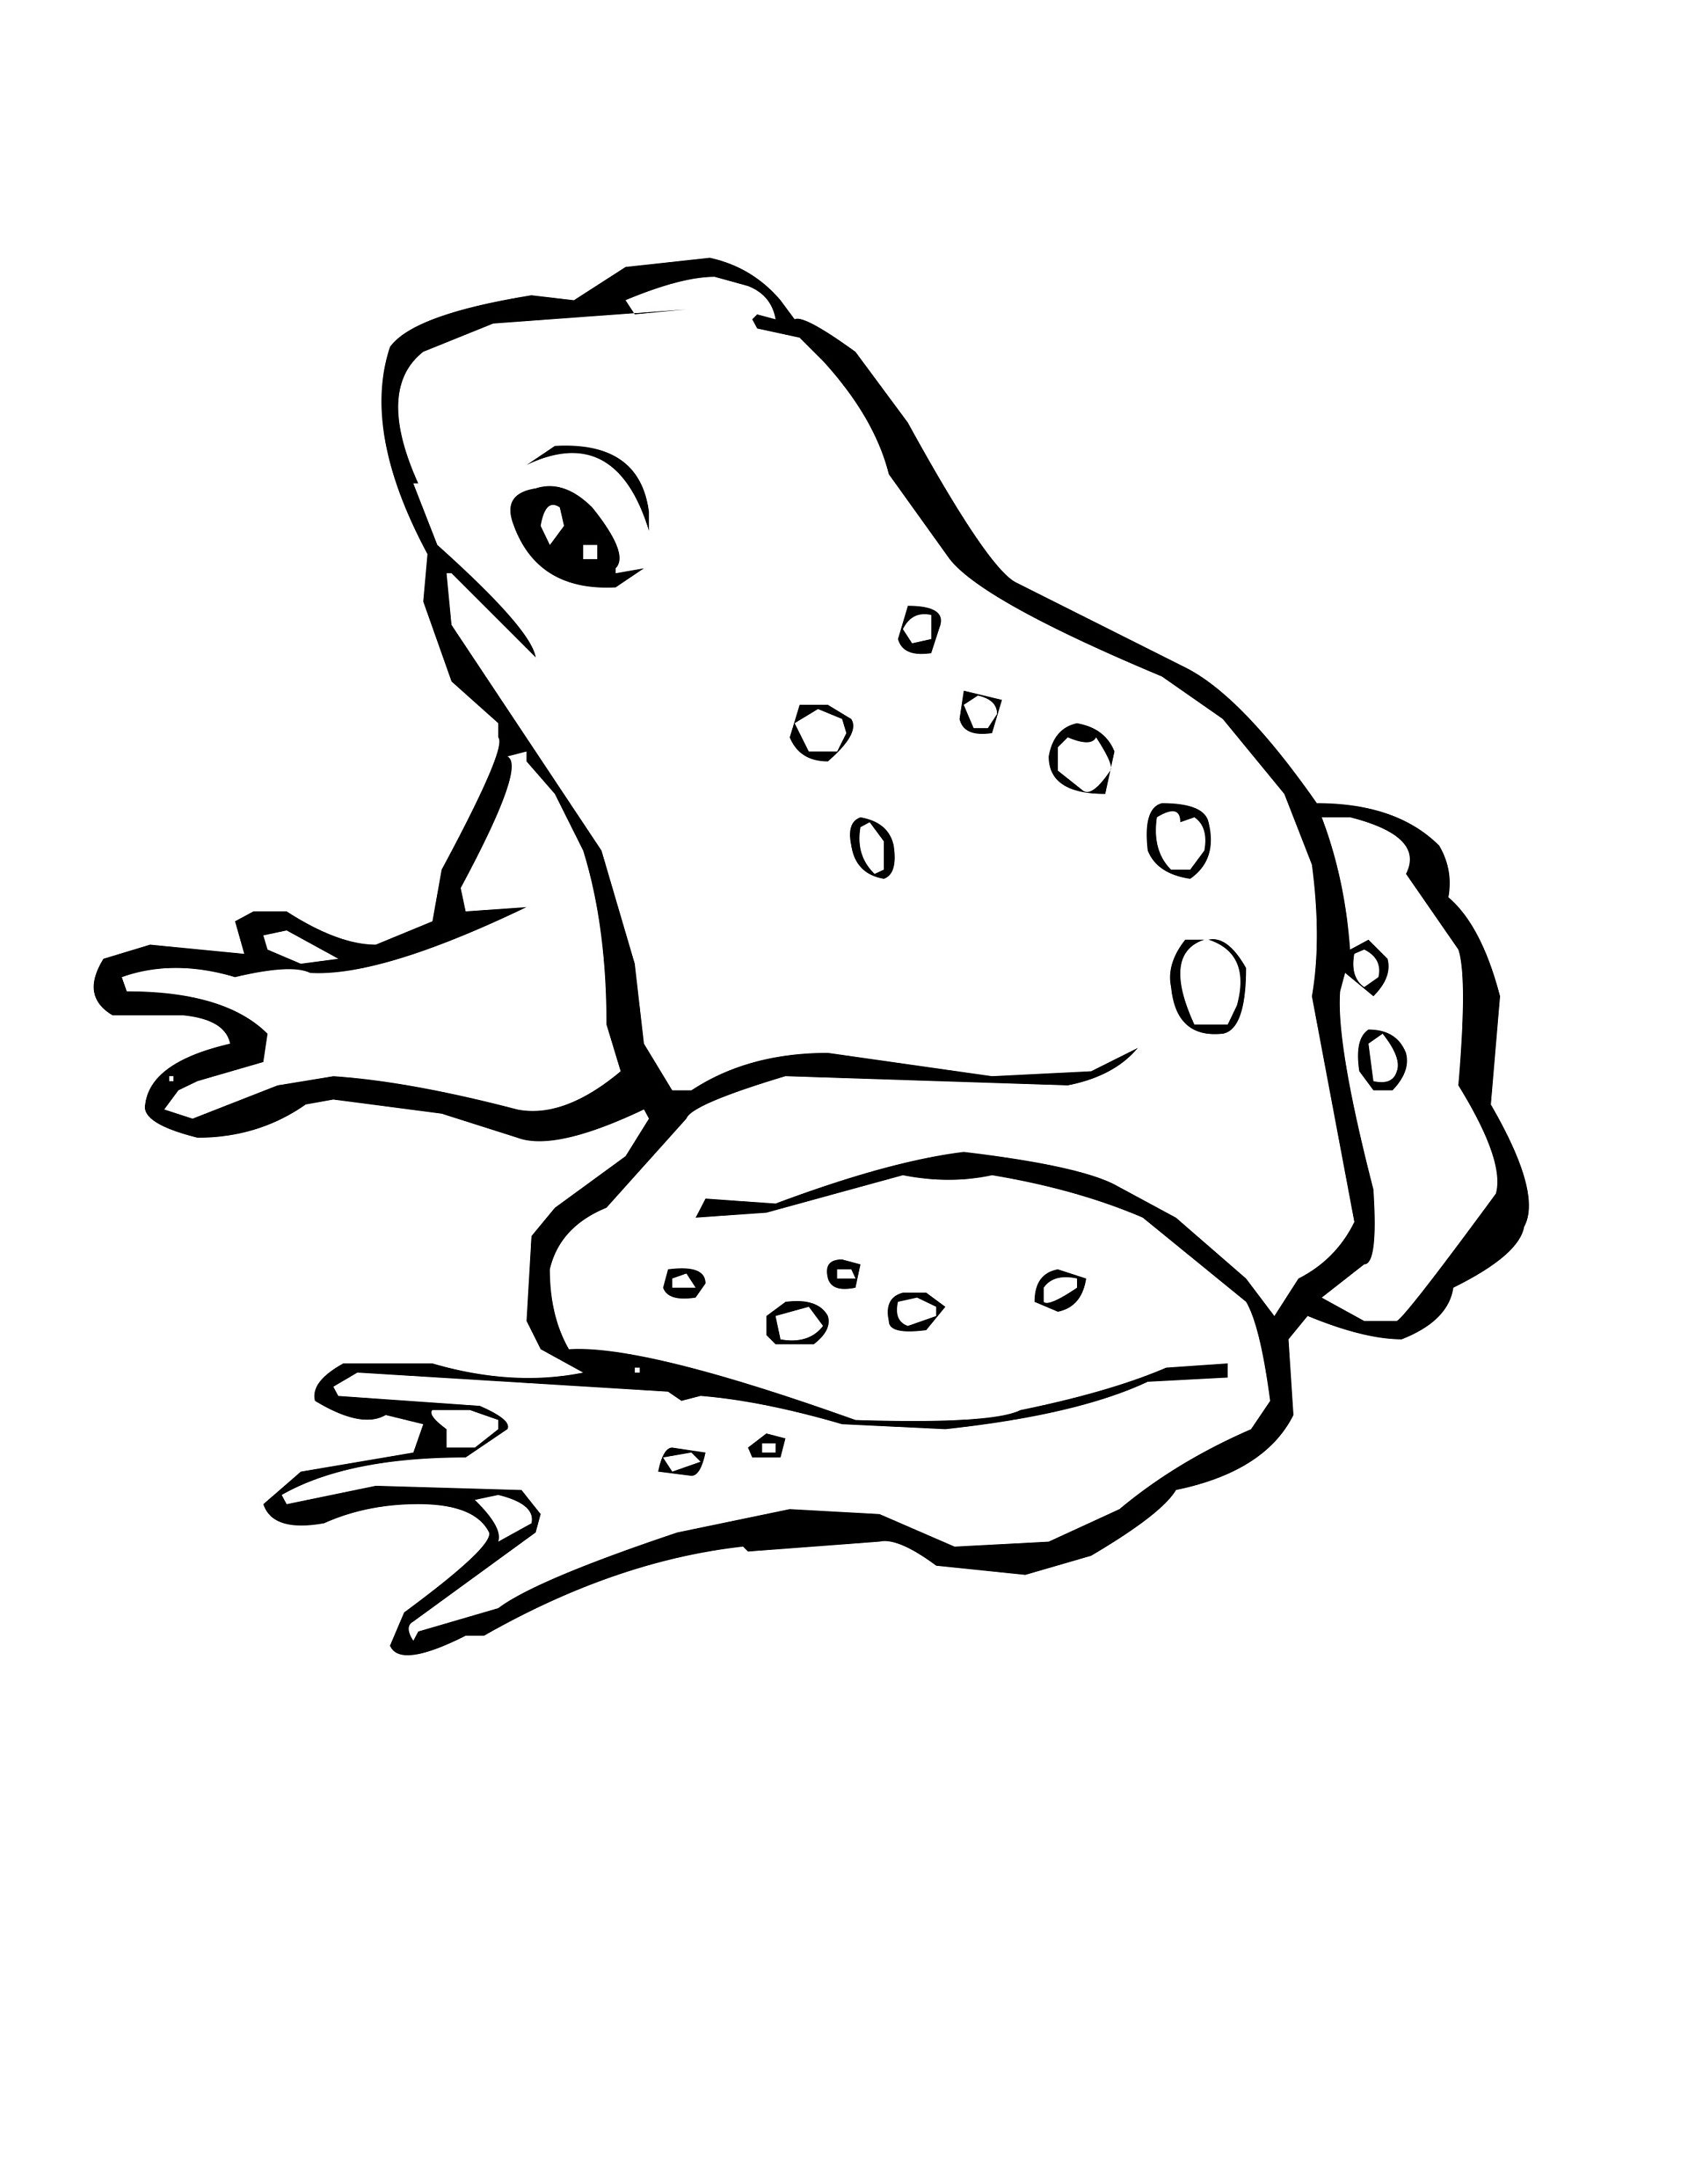 Frog Color Pages for Kids   Activity Shelter   Coloring Pages for ...